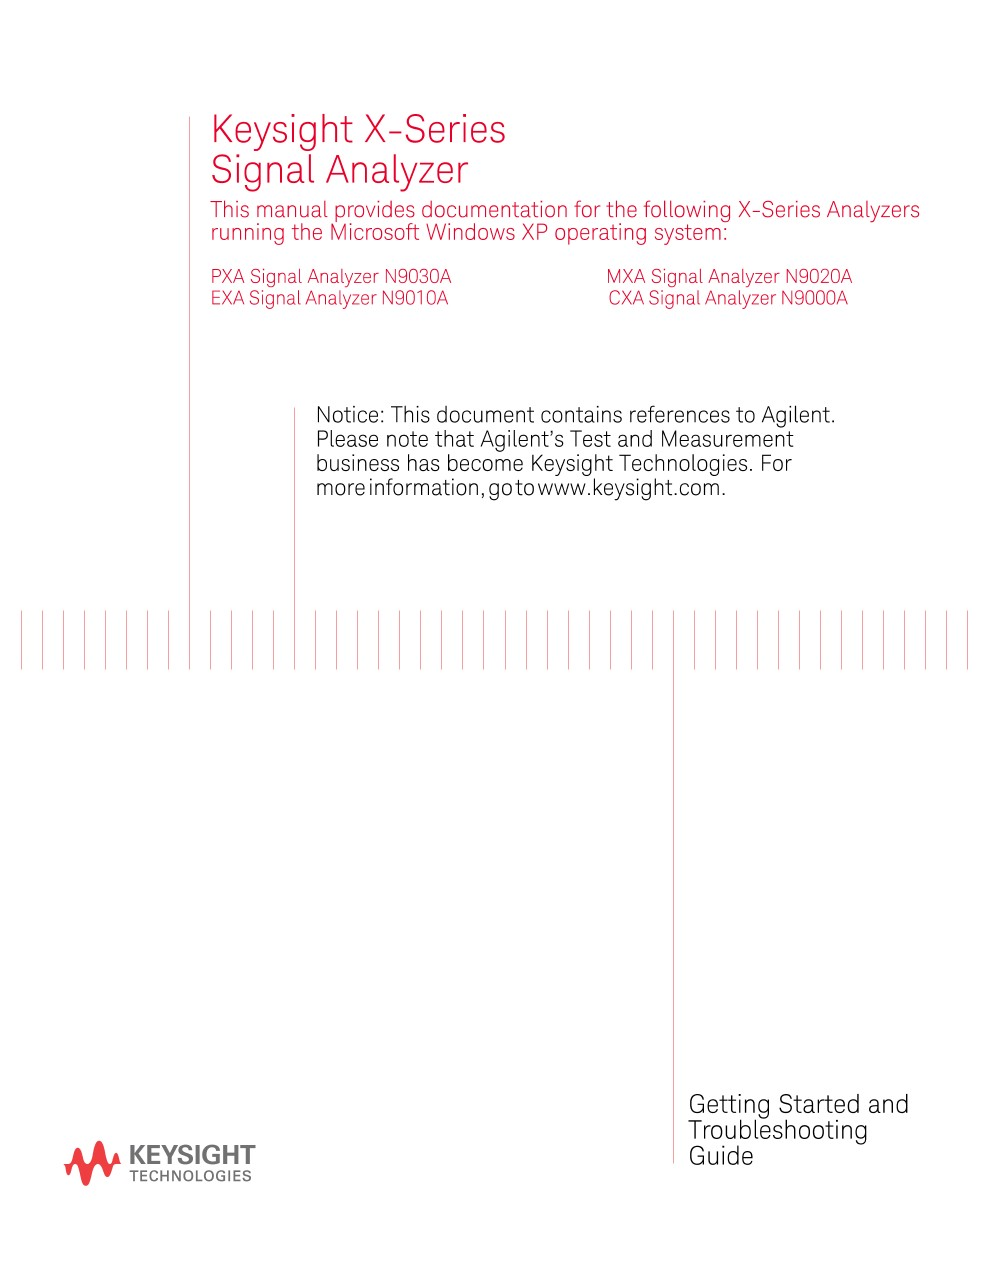 X-Series Signal Analyzer Getting Started and Troubleshooting Guide ...